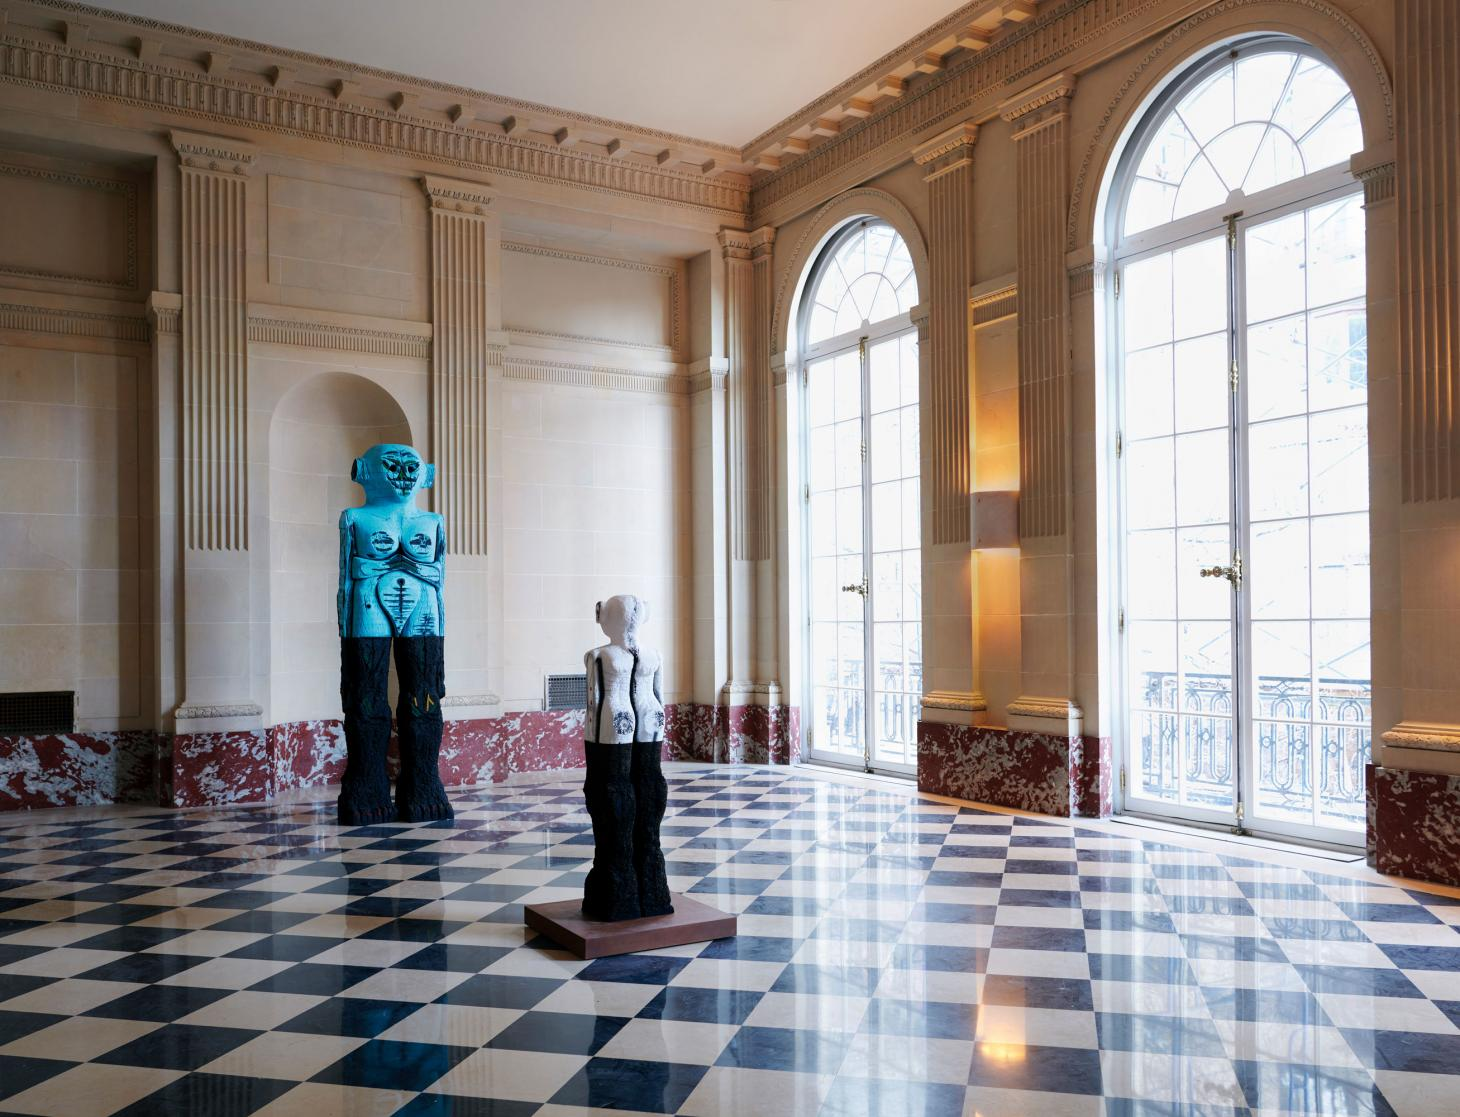 Receiver (2019) and I Can Hear Everything You Think (2020), by Pakistani- American sculptor Huma Bhabha, in the Stone Room, which features a marble chequerboard floor and a trio of fan-shaped windows at Salon 94 New York